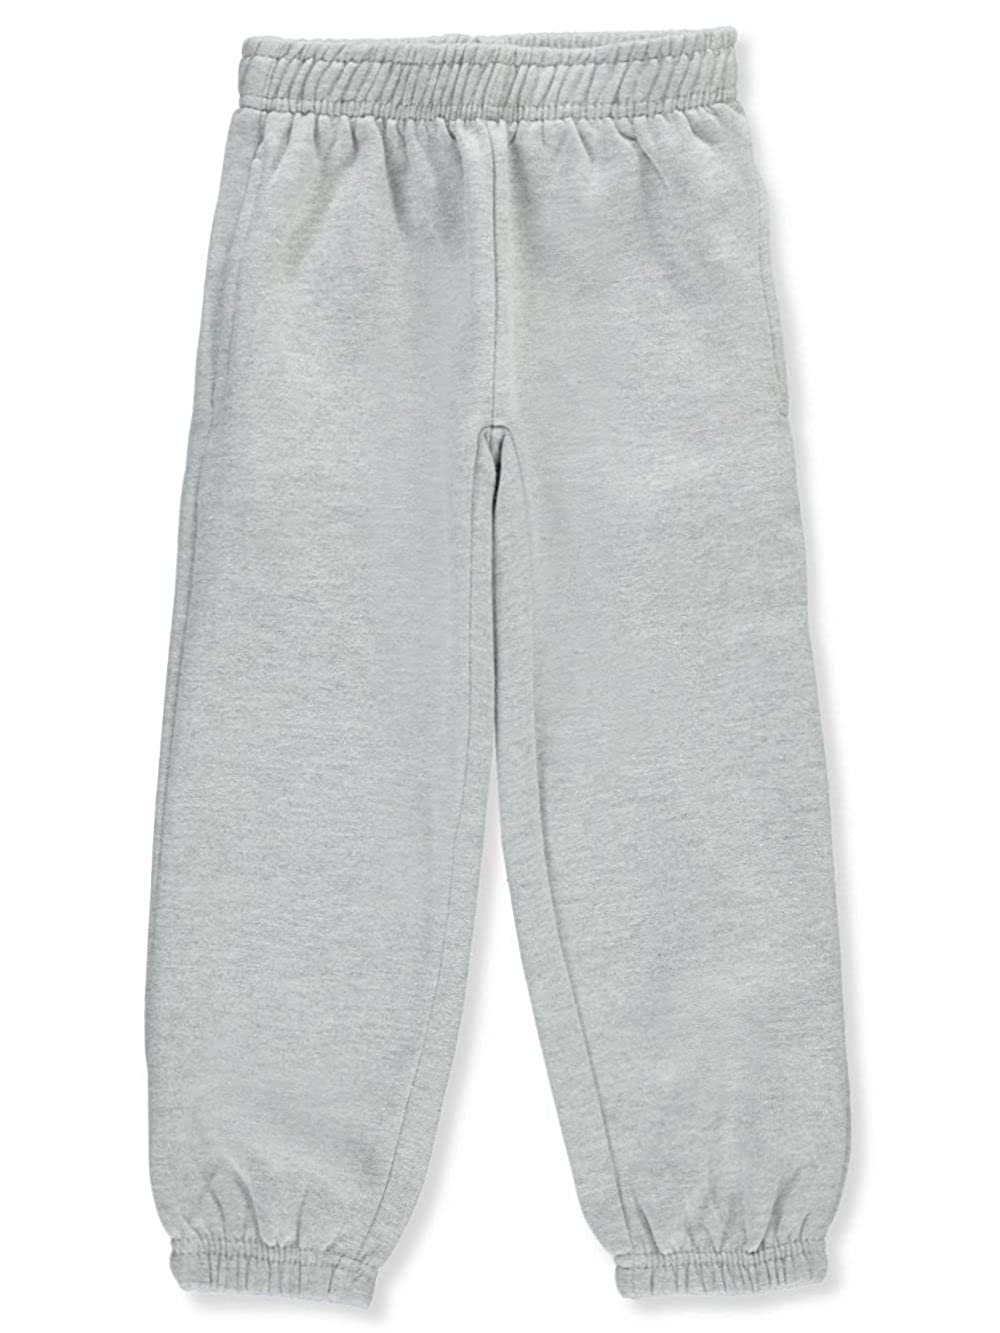 Premium Authentic Schoolwear Boys' Sweatpants